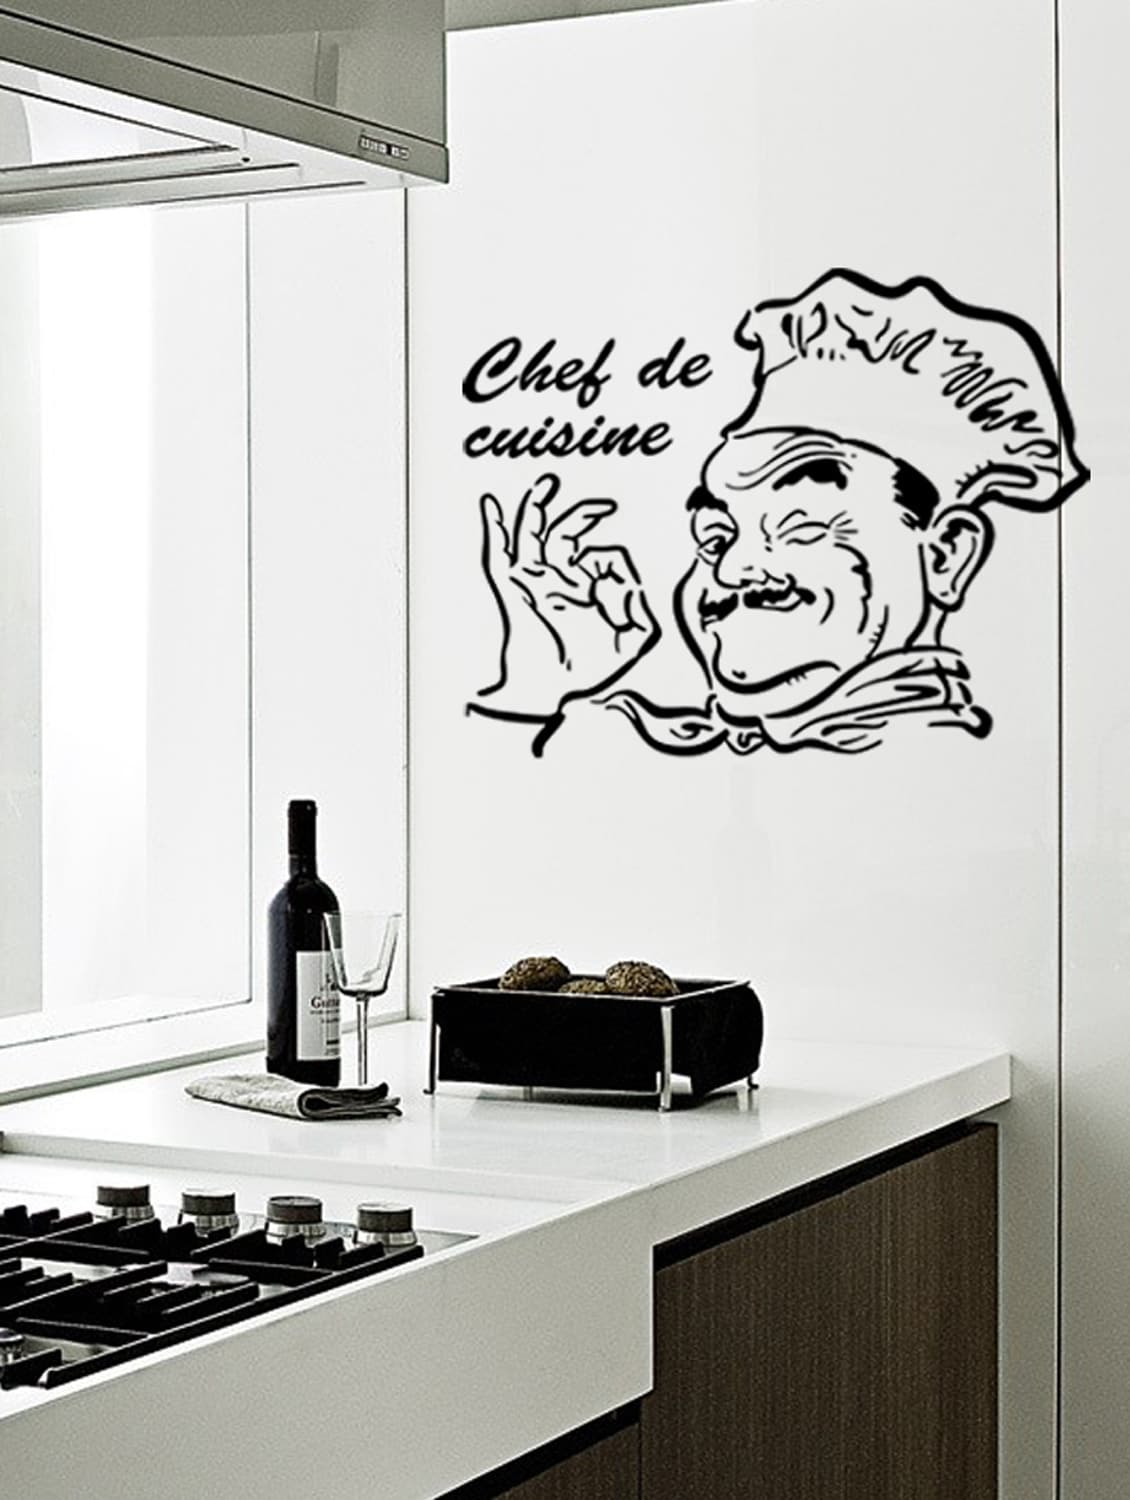 Buy Wall Stickers Kitchen Stylish Design Chef De Cuisine